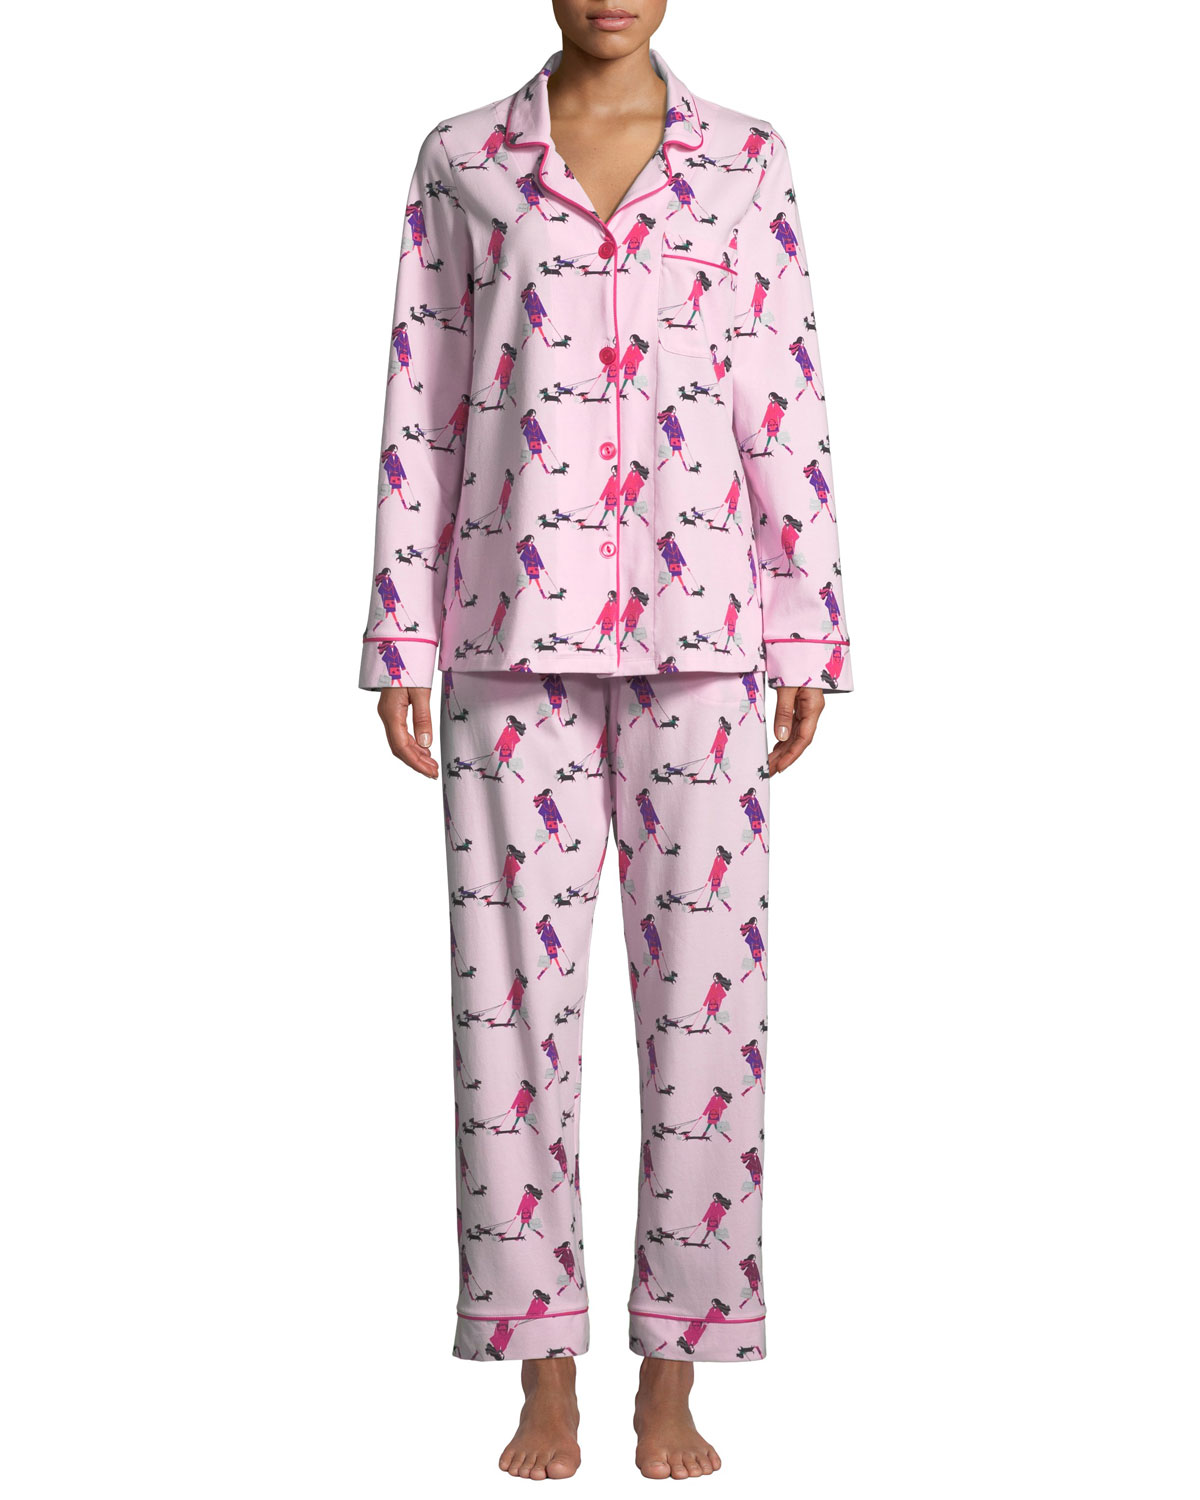 BEDHEAD Shoppers Classic Pajama Set in Pink Pattern